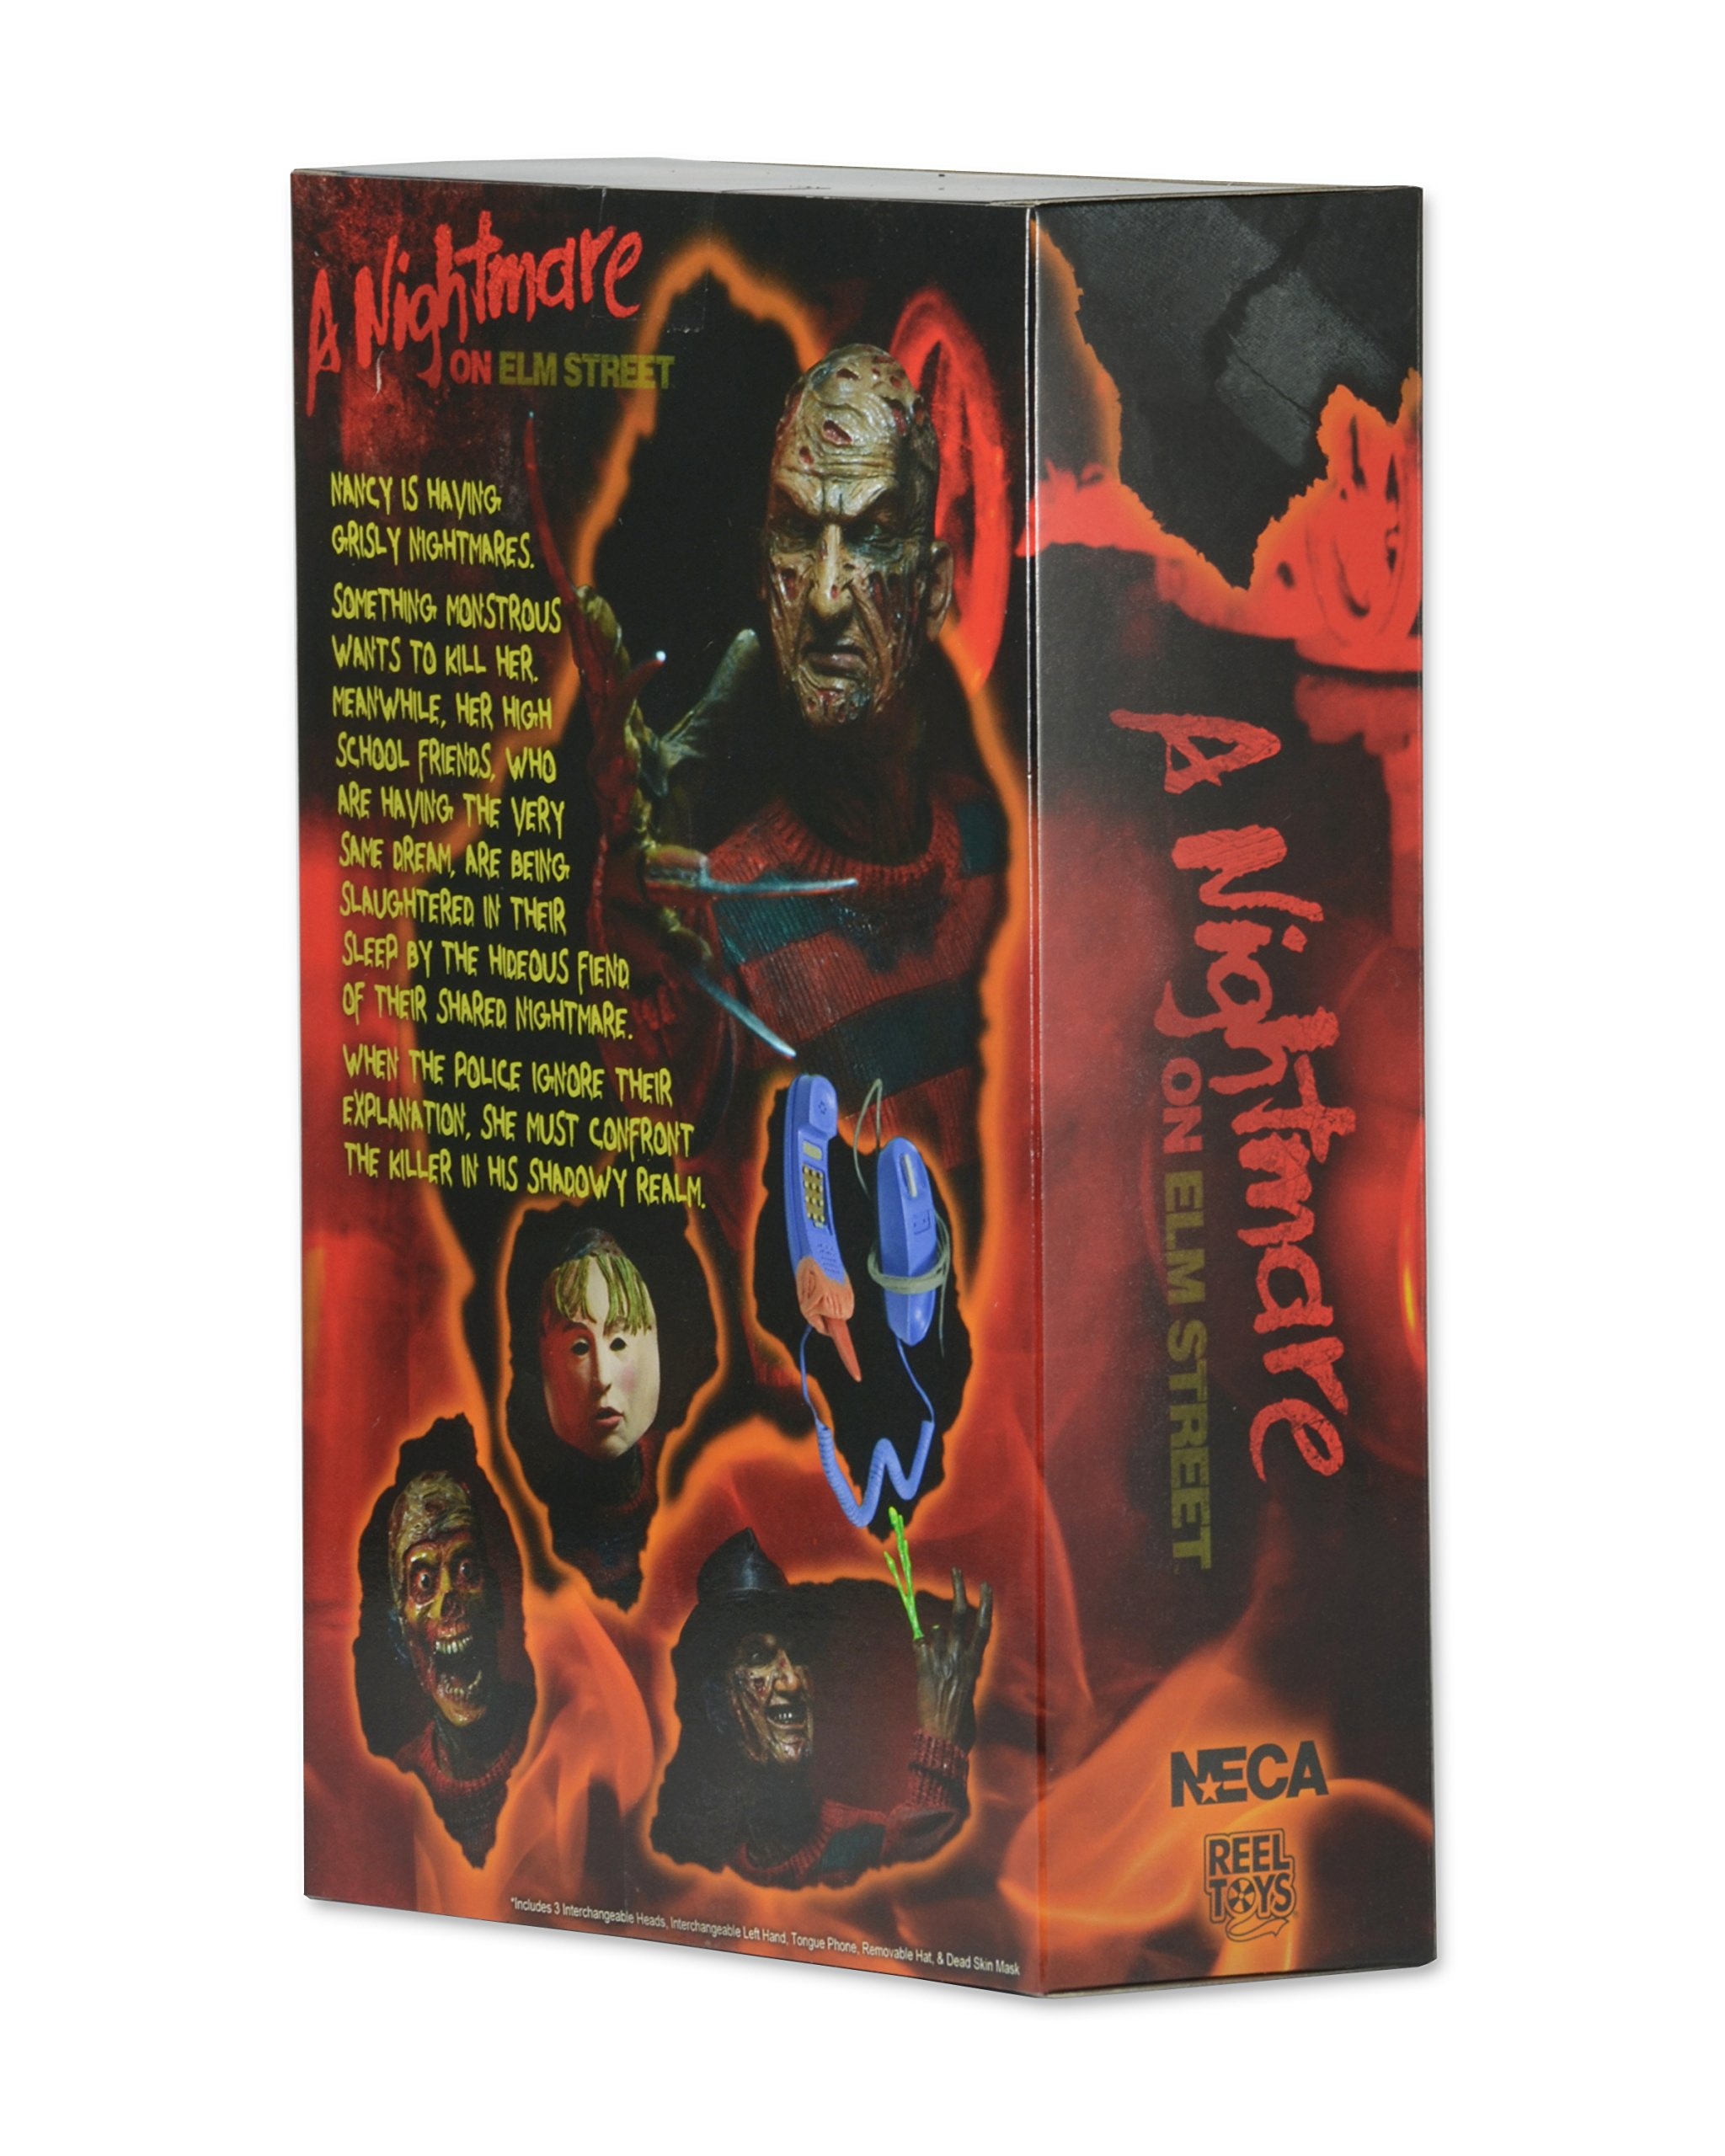 NECA - Nightmare on Elm Street - 7'' Scale Action Figure - Ultimate Freddy